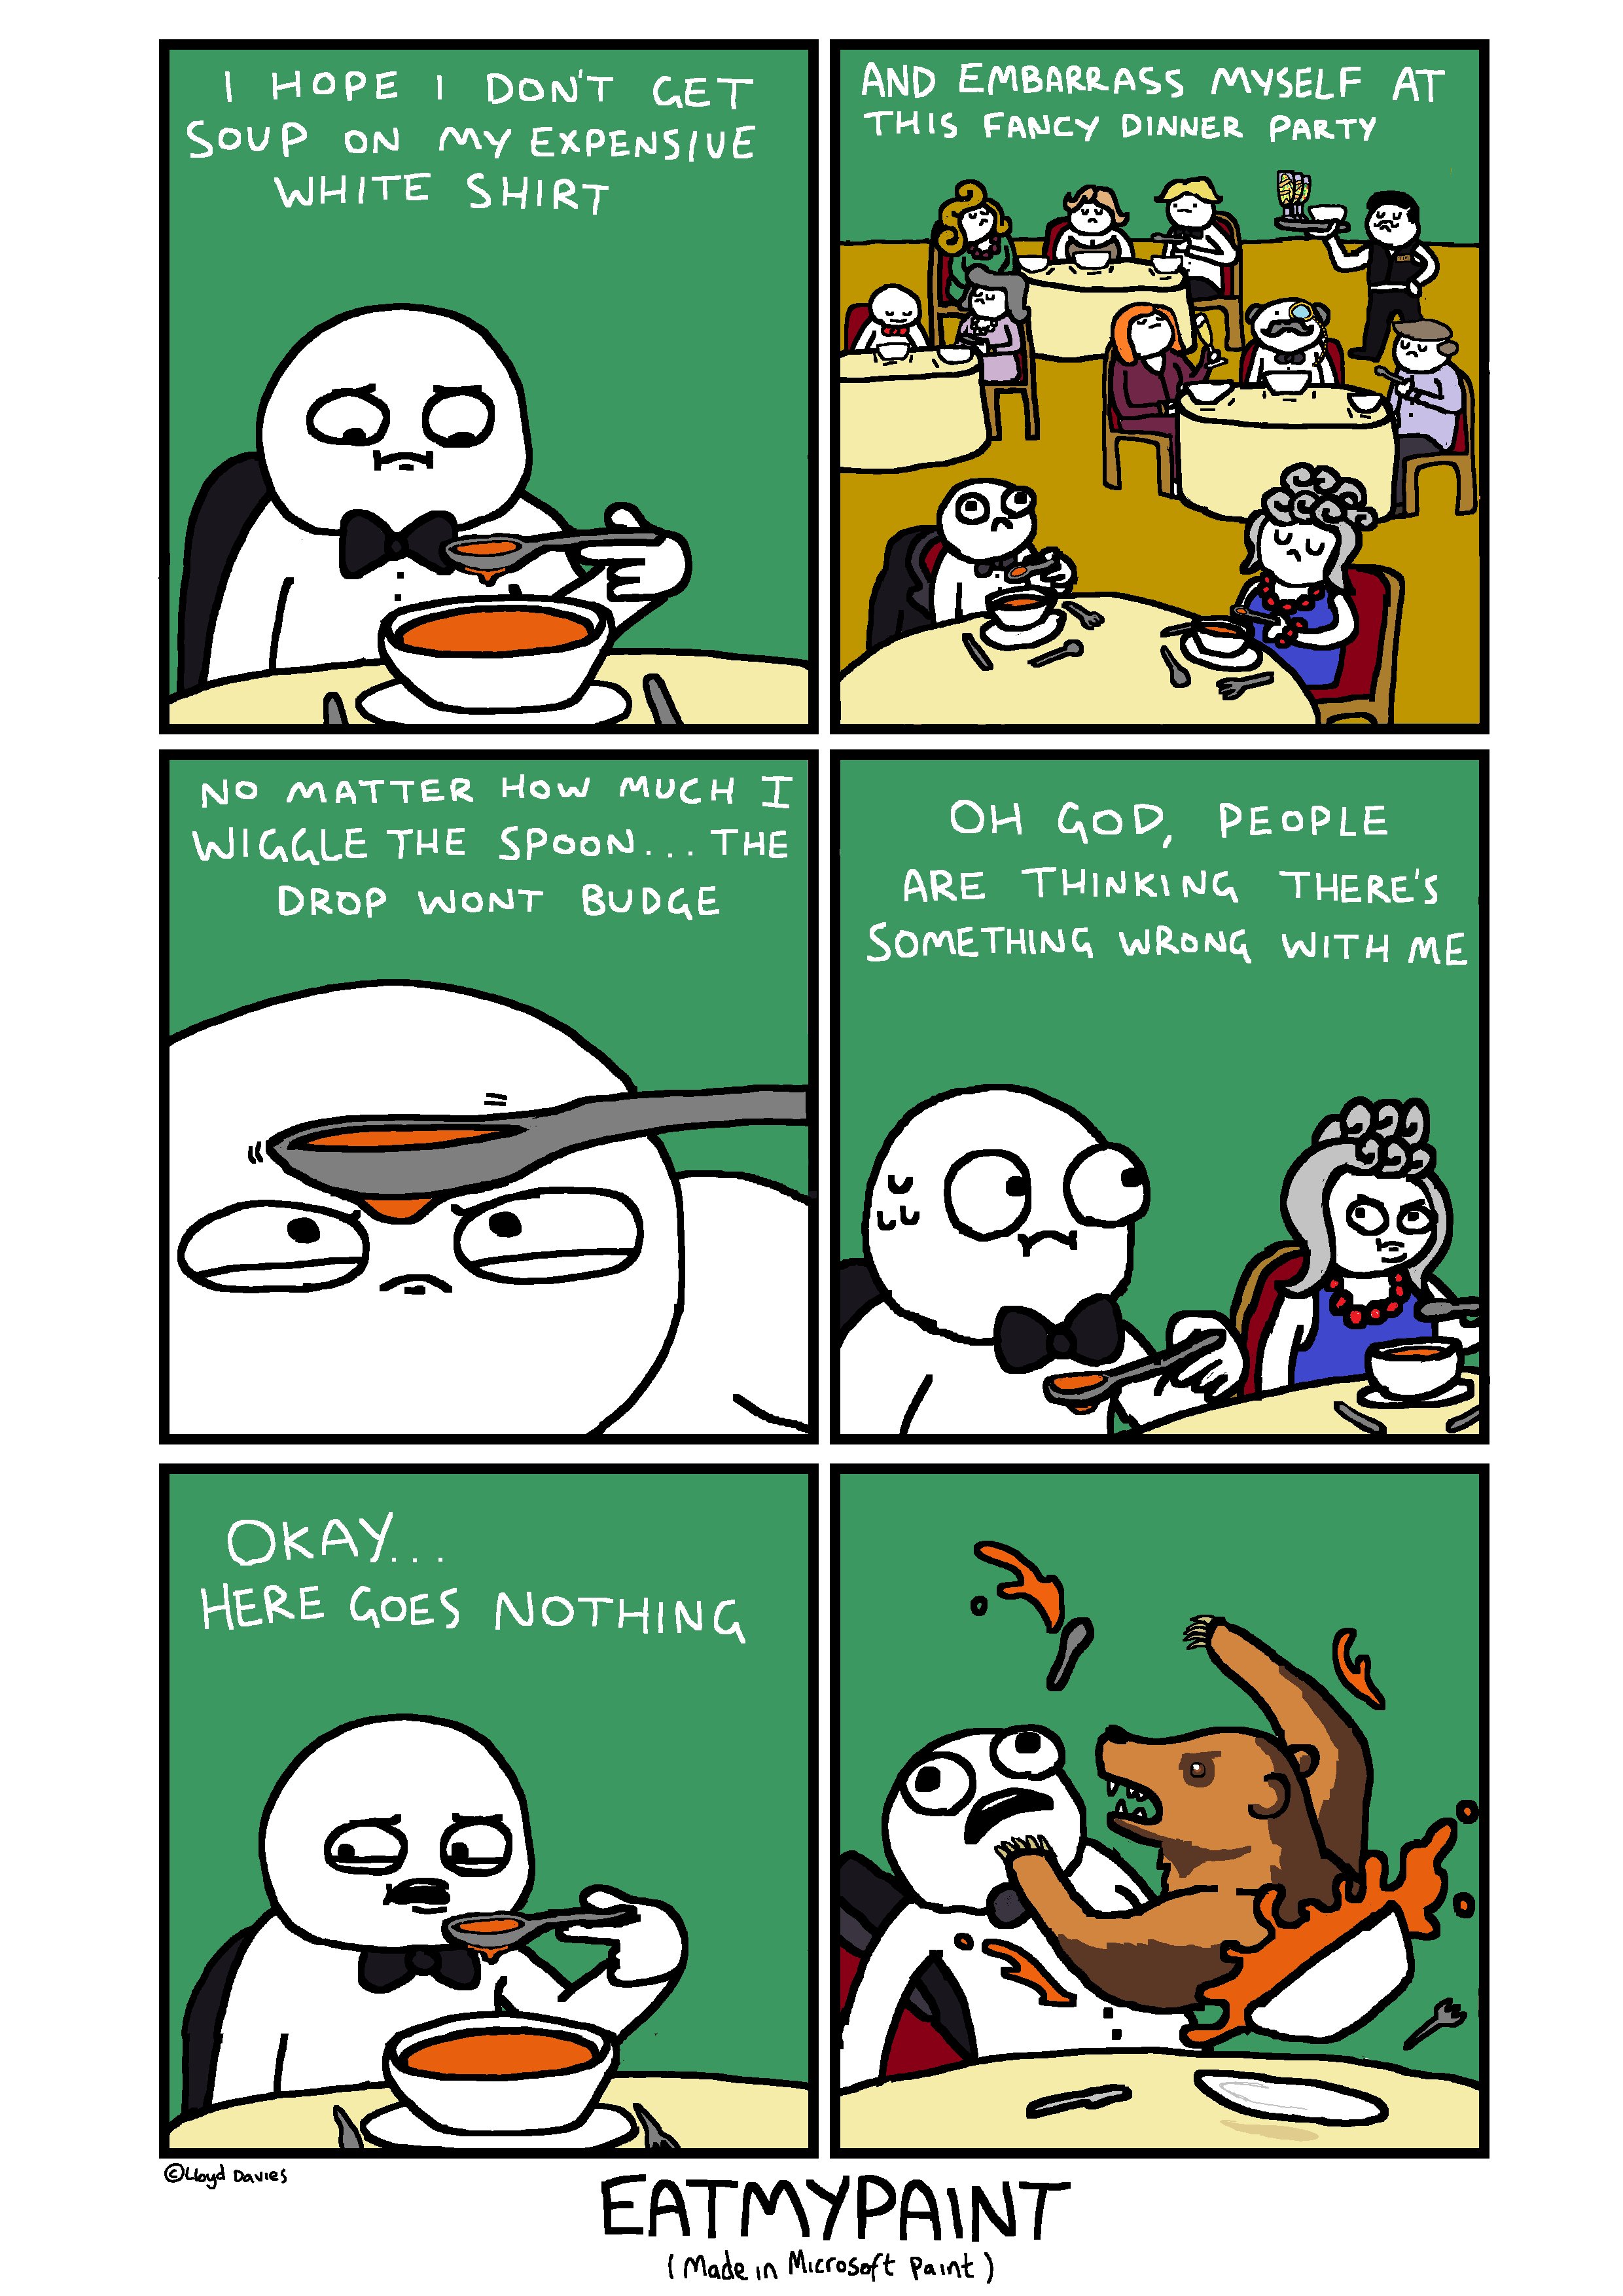 This is why I always get the waiter to feed the soup to me, while I hide under the table.